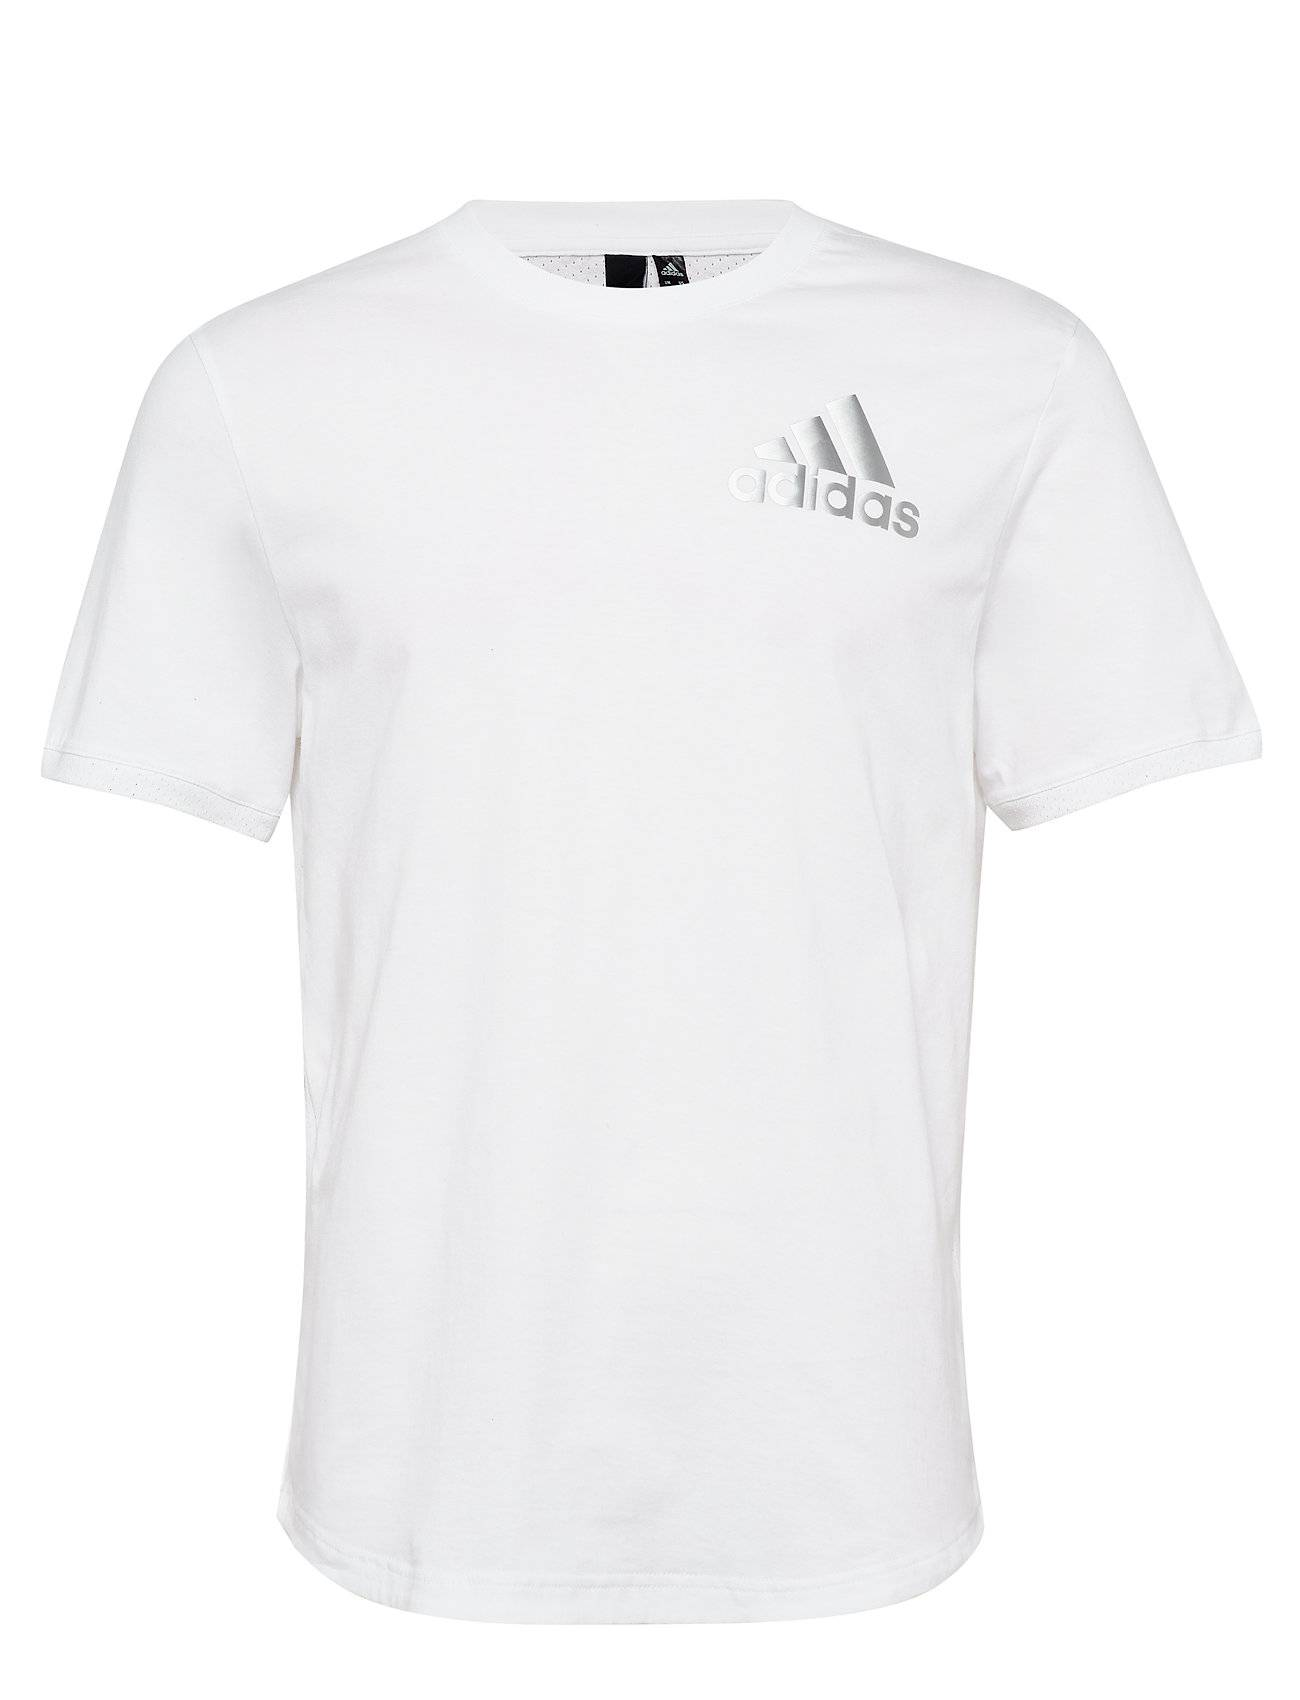 Image of adidas Performance M Sid Tee Ct T-shirts Short-sleeved Valkoinen Adidas Performance